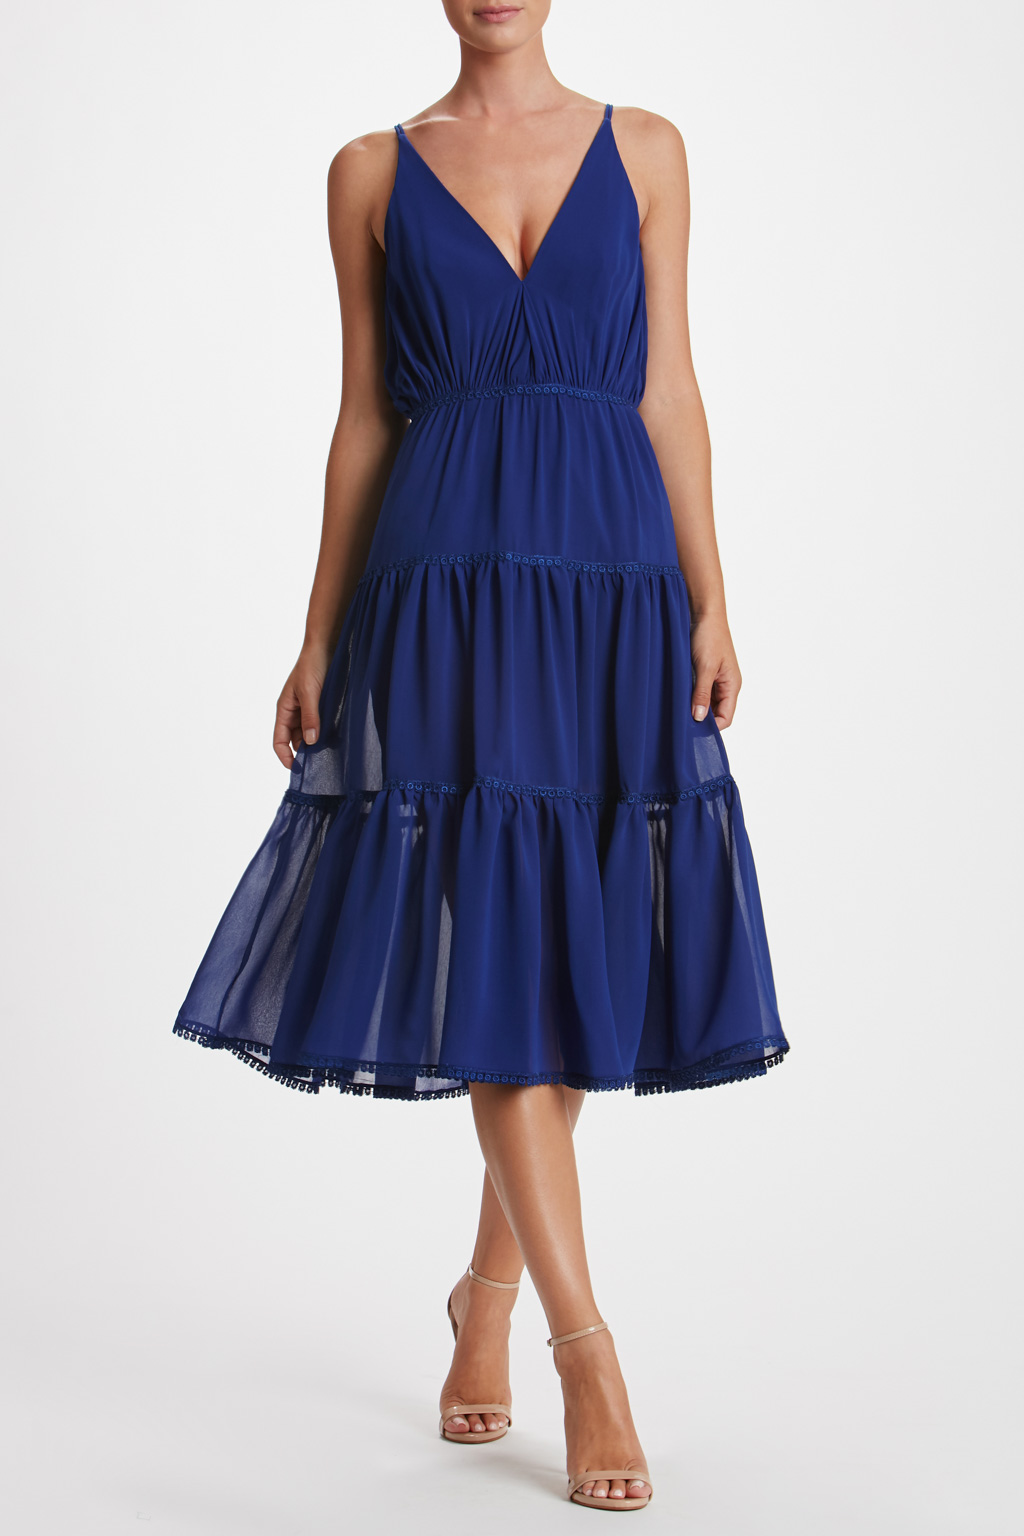 Jessica  by Dress the Population $254, Sizes XS-XL